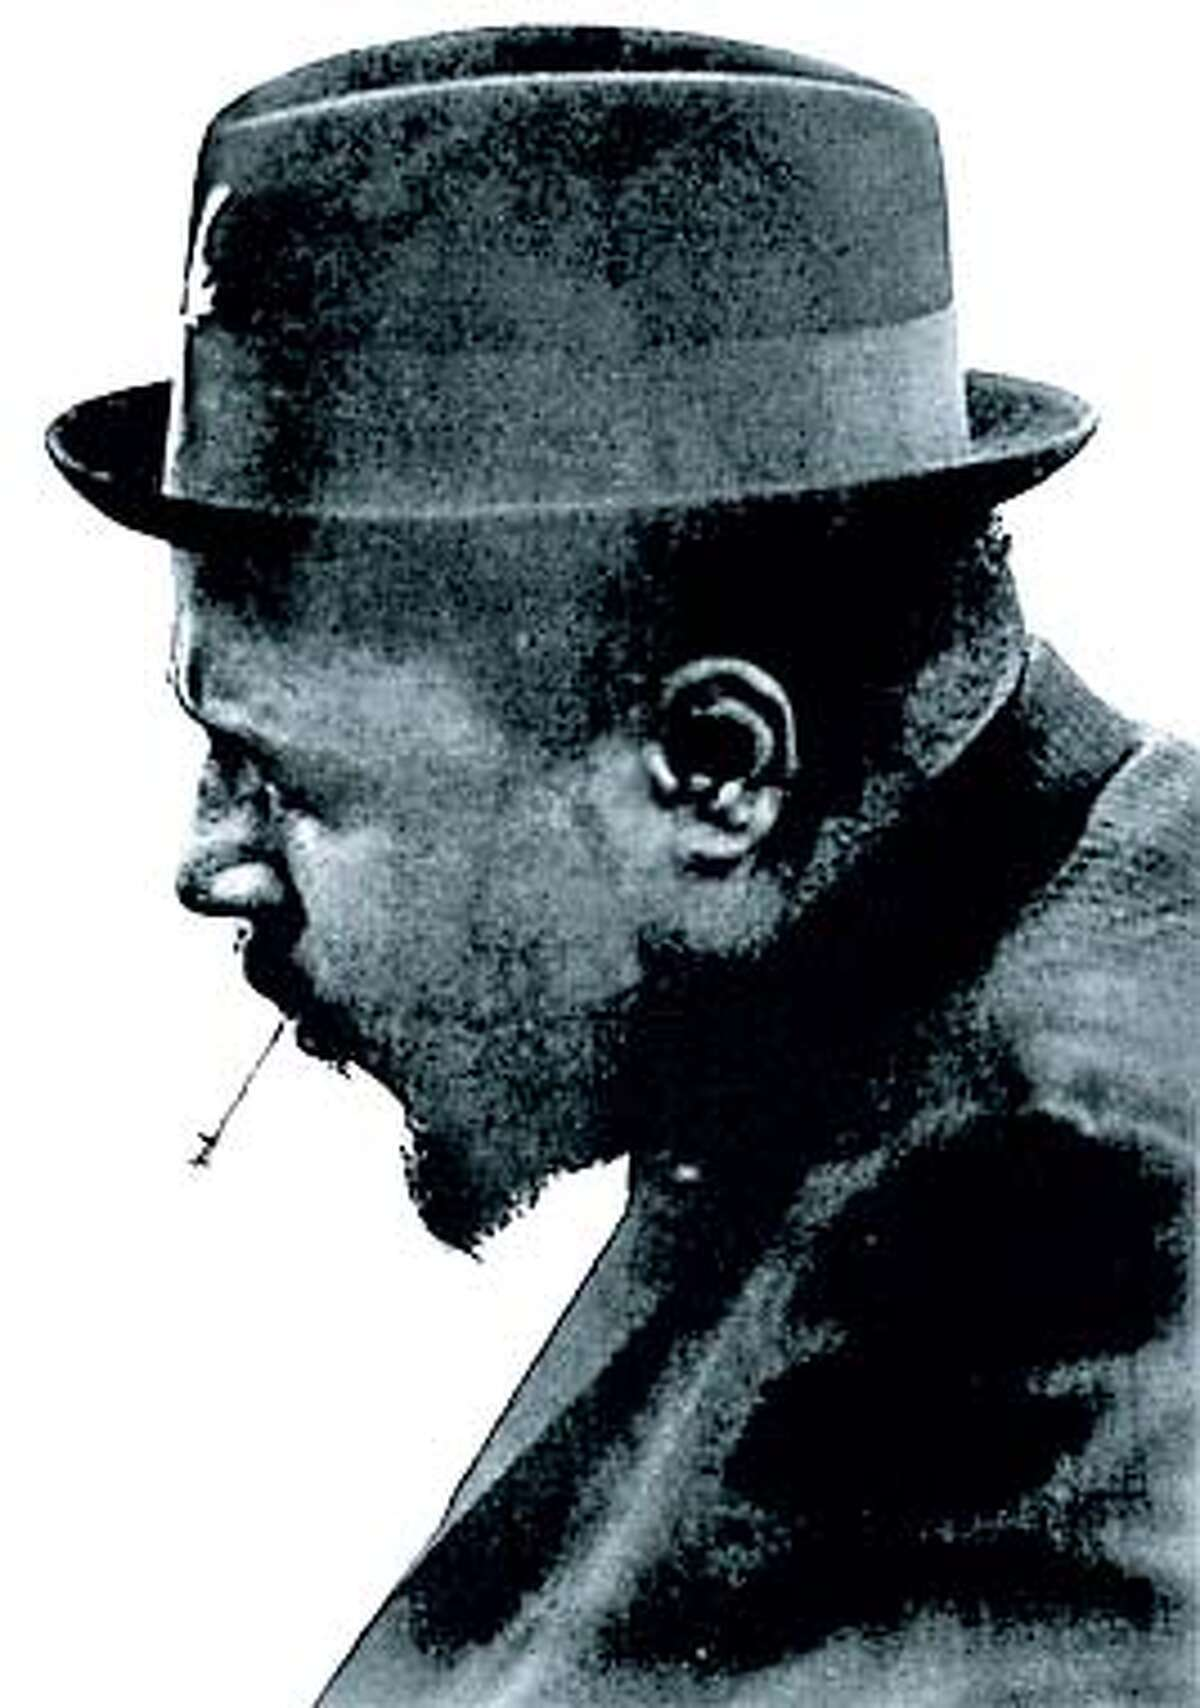 The essence of cool: Thelonius Monk